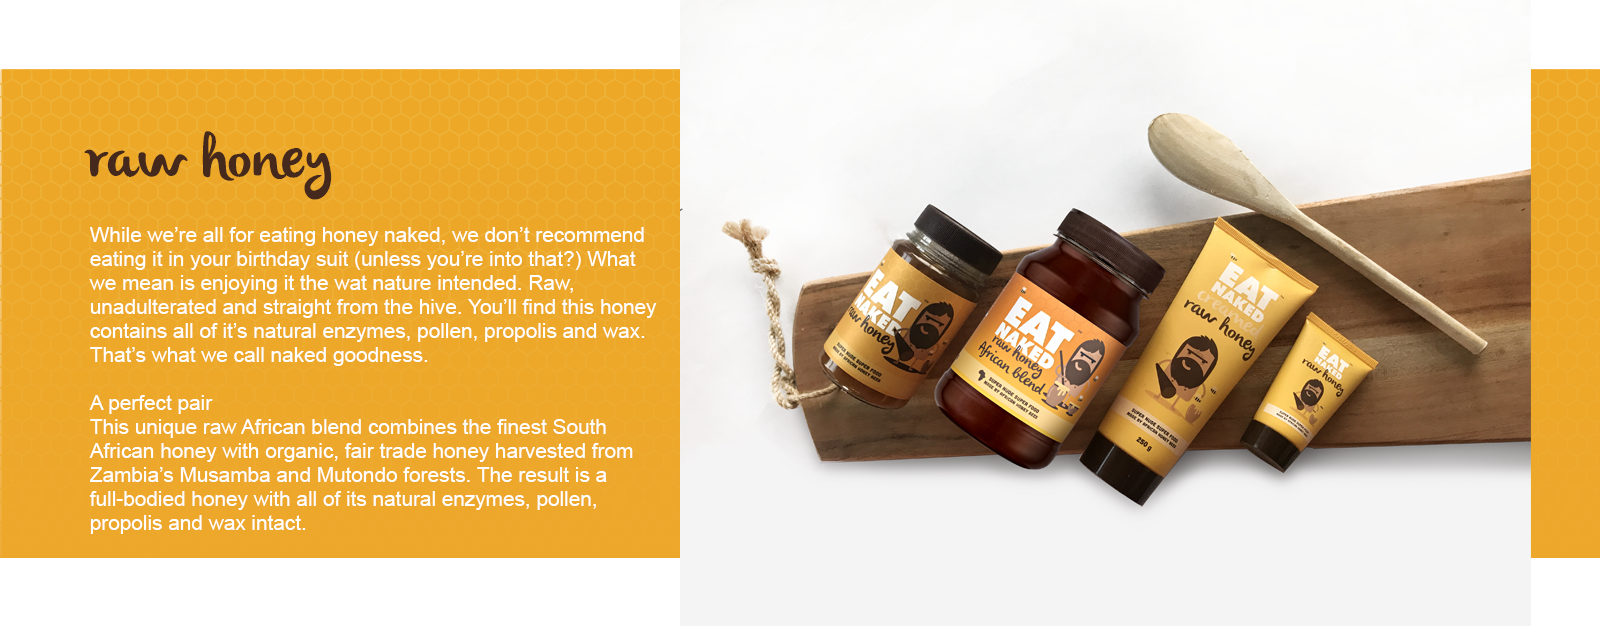 Product-1-raw honey